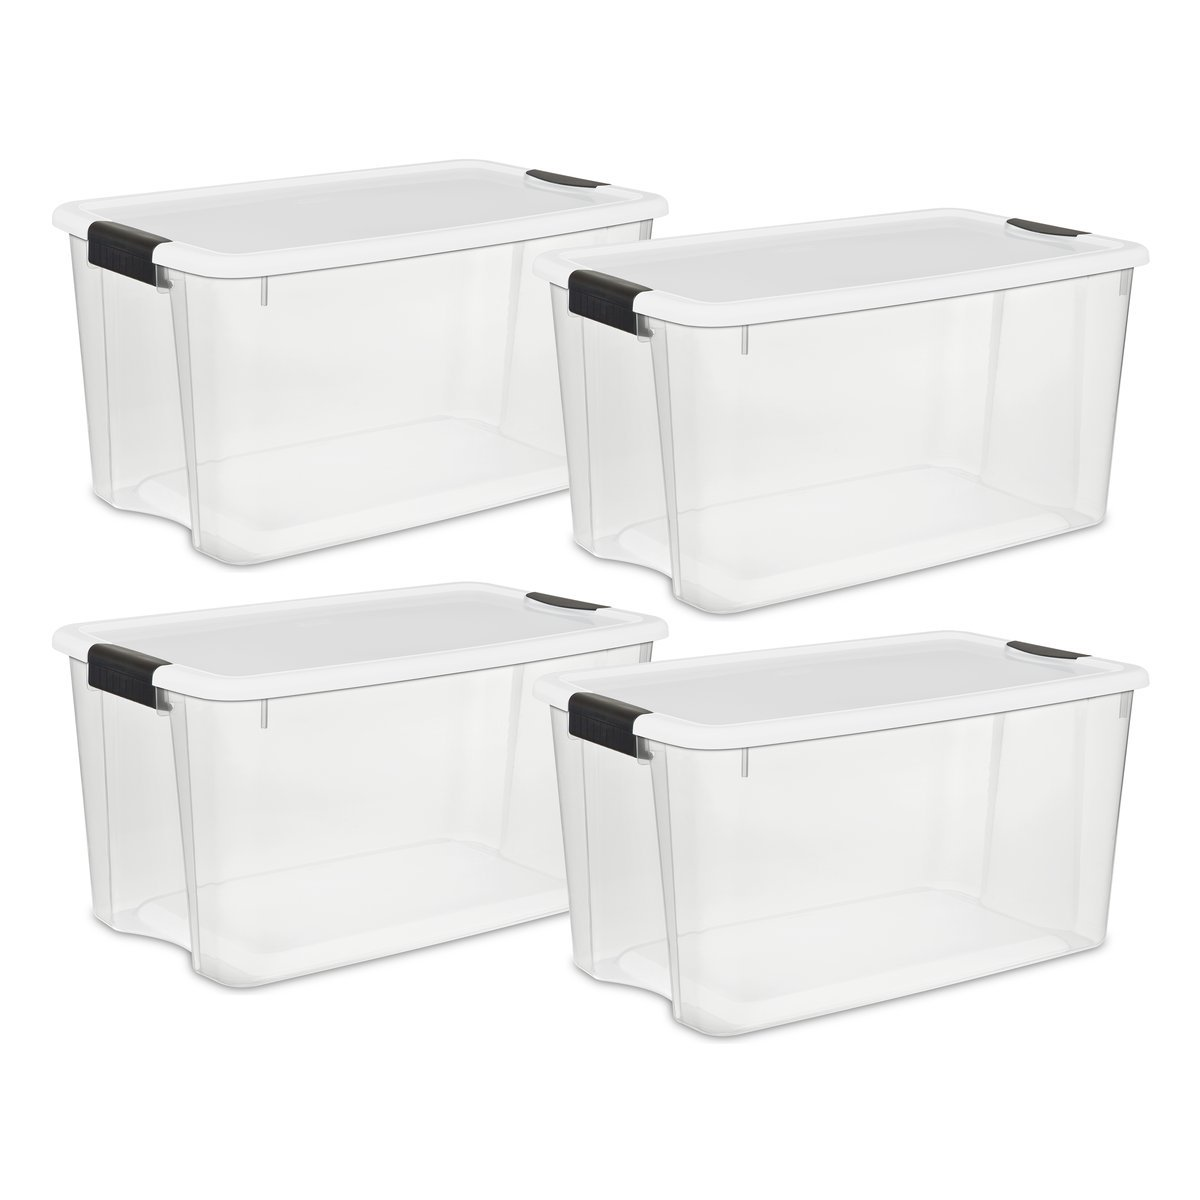 Sterilite 19889804 70 Quart/66 Liter Ultra Box Clear with a White Lid and Black Latches, 4-Containers, by STERILITE